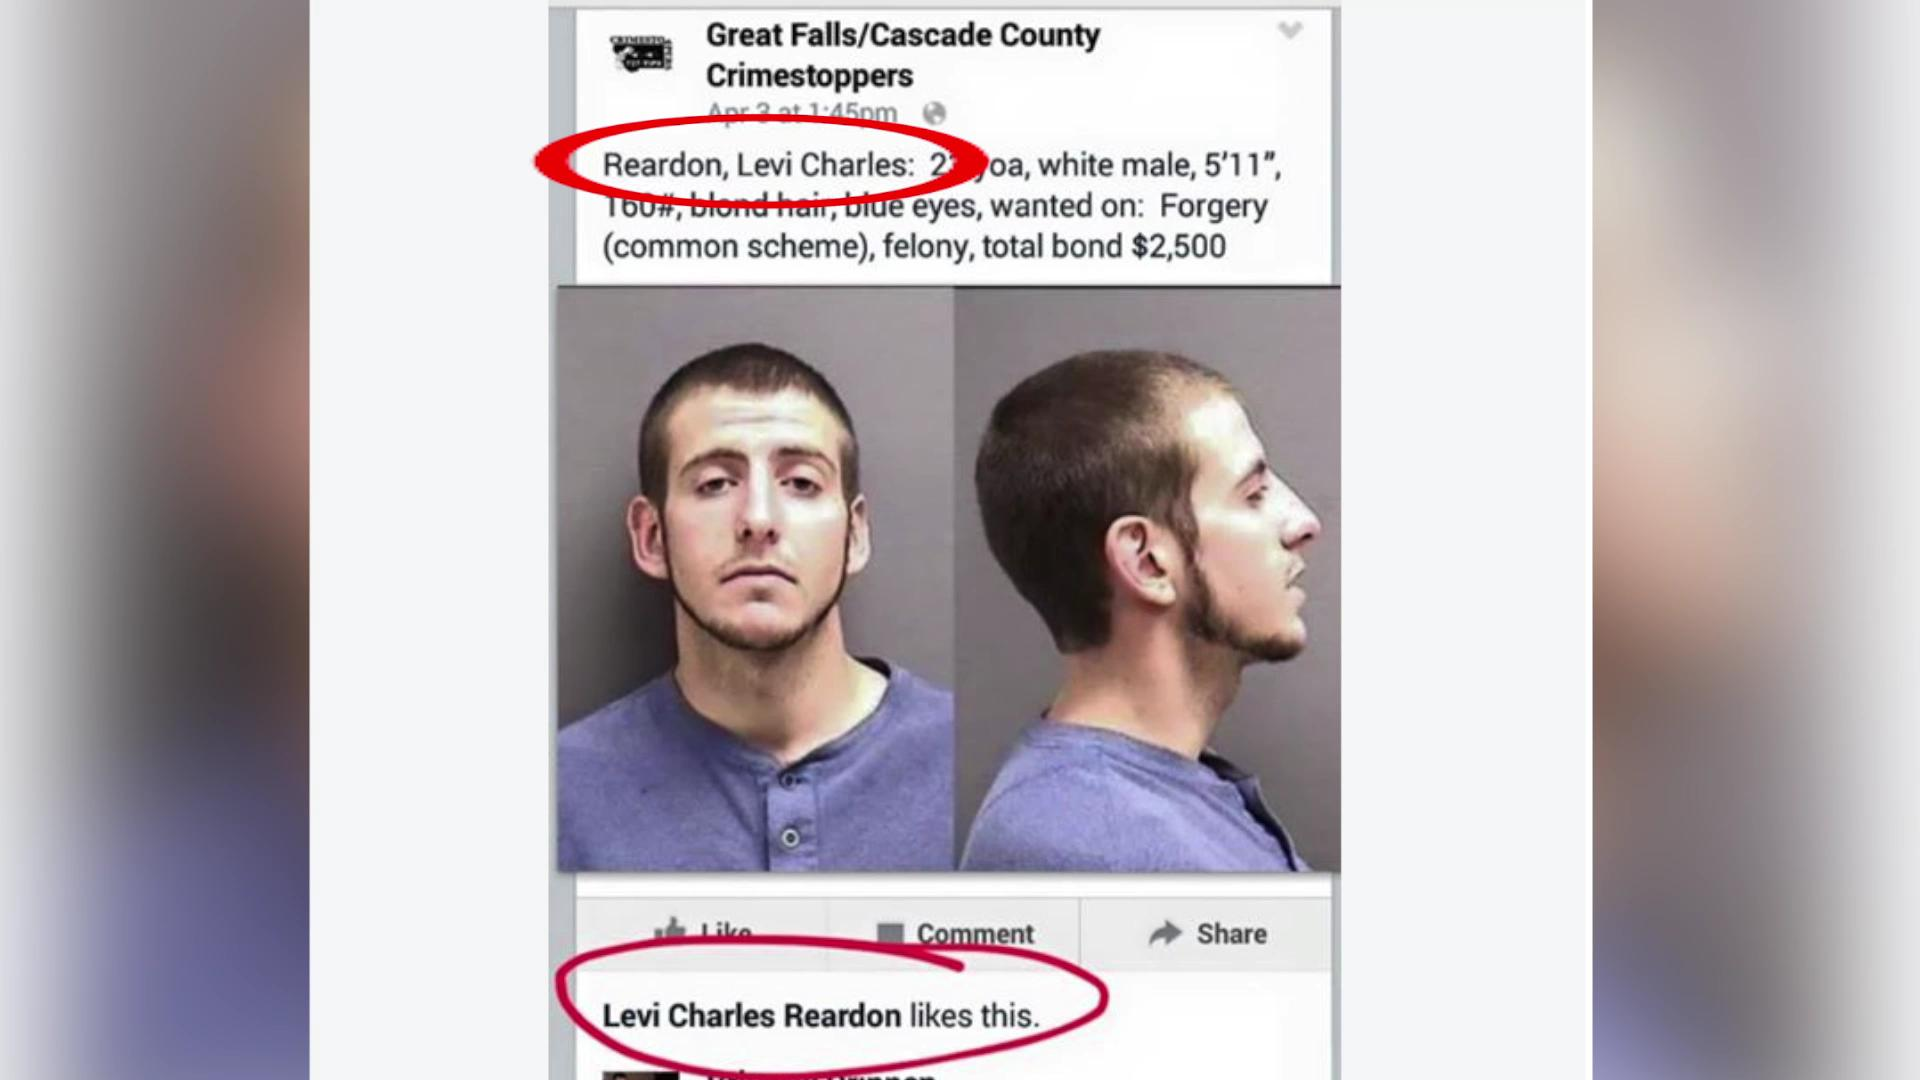 Man arrested after liking his own wanted poster on Facebook